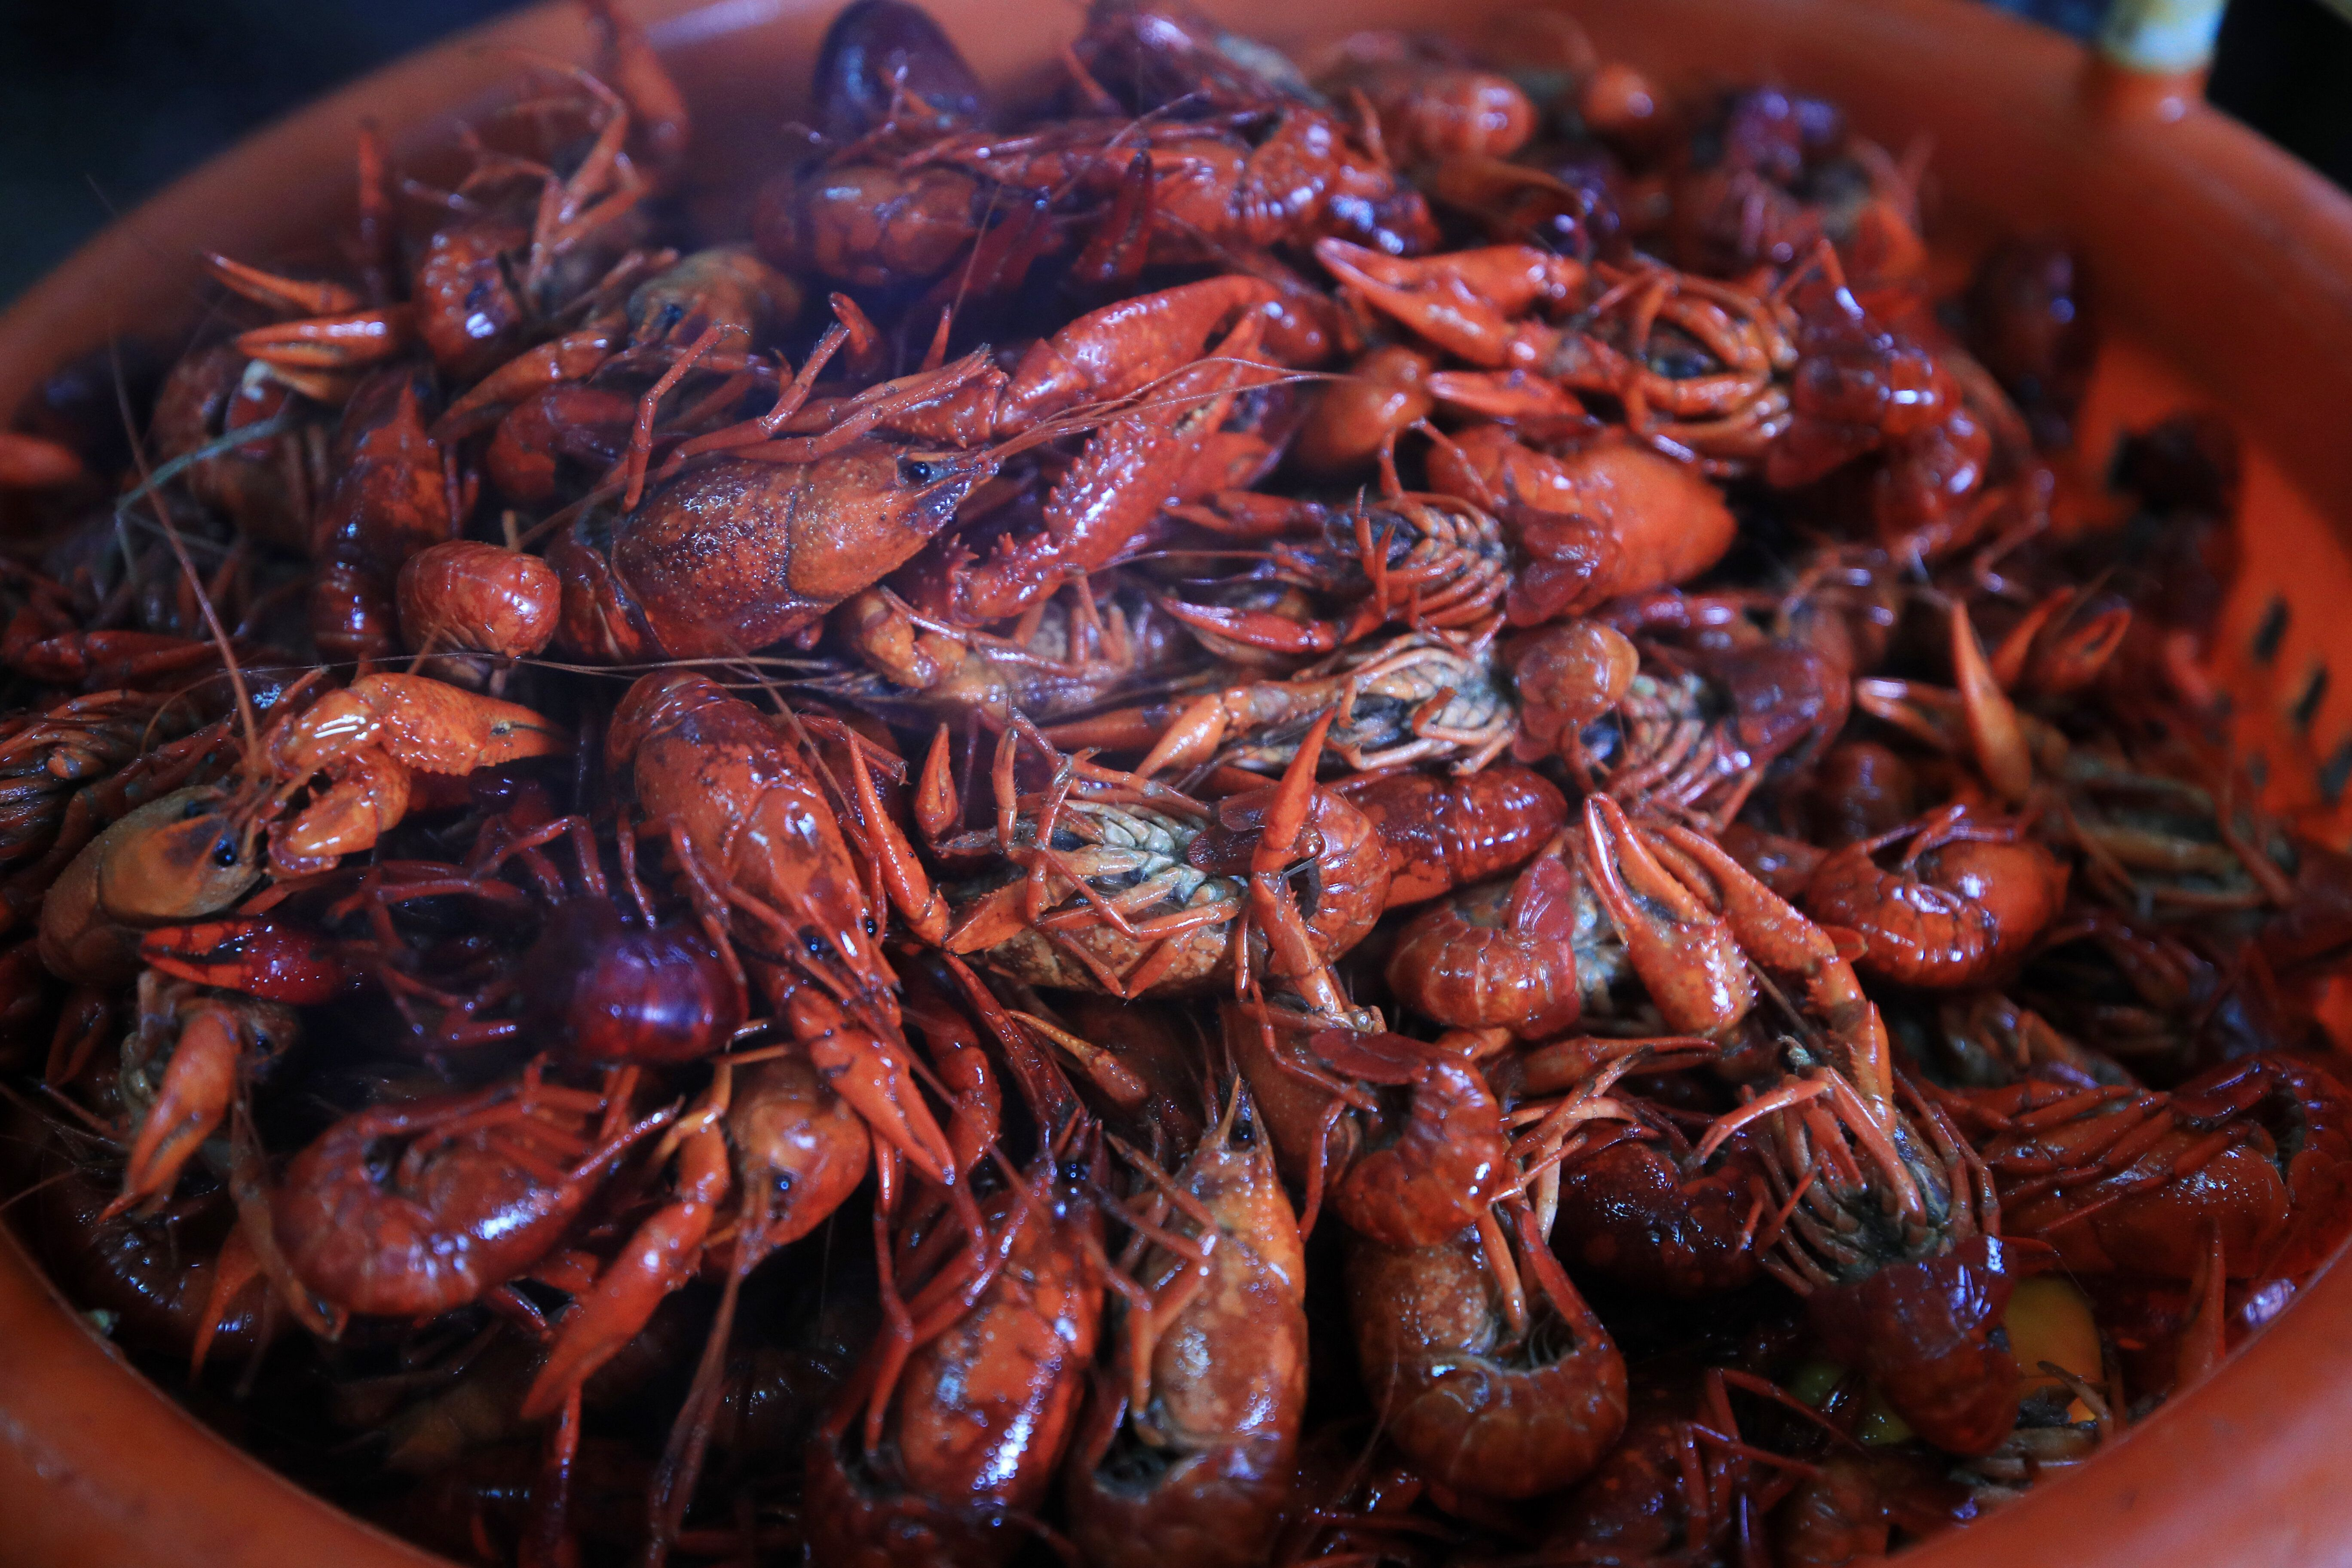 Alvarez Navarro and Hernandez Villadares say they were processing crawfish at a Louisiana plant when they and other workers g